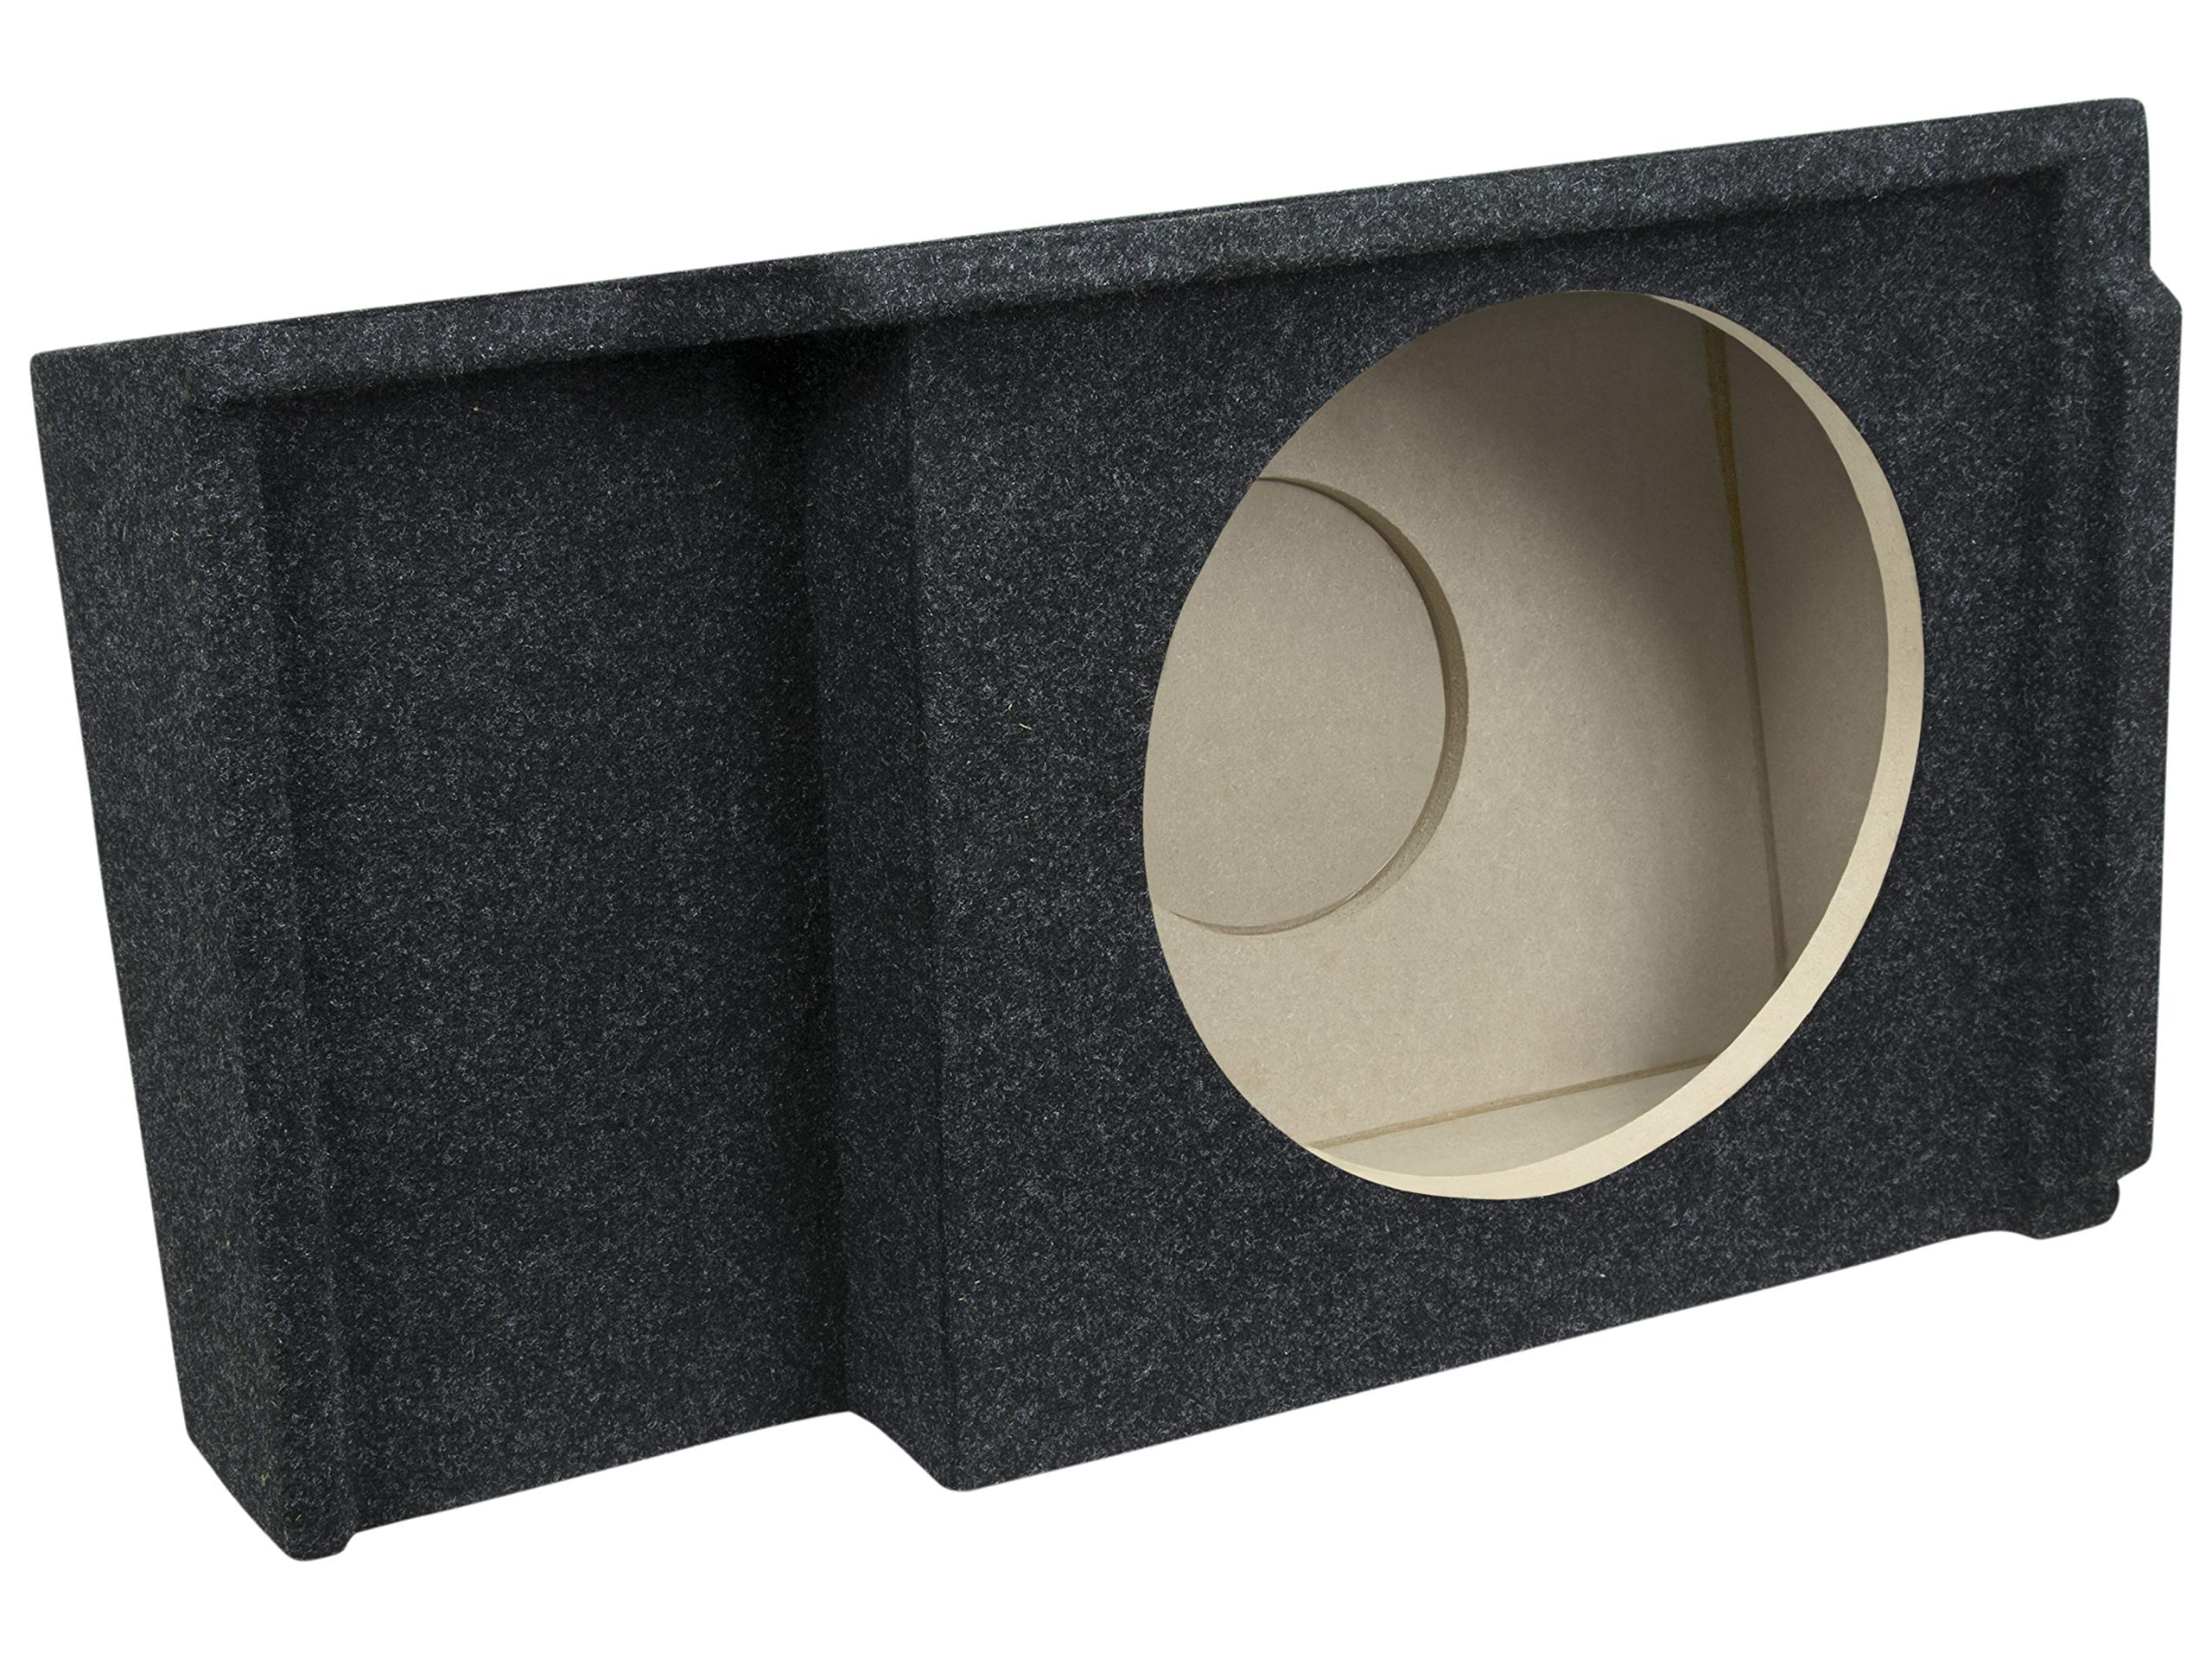 Bbox A151-12CP Single 12'' Sealed Carpeted Subwoofer Enclosure - Fits 1999-2007 Chevrolet/GMC Silverado/Sierra Extended Cab by Atrend